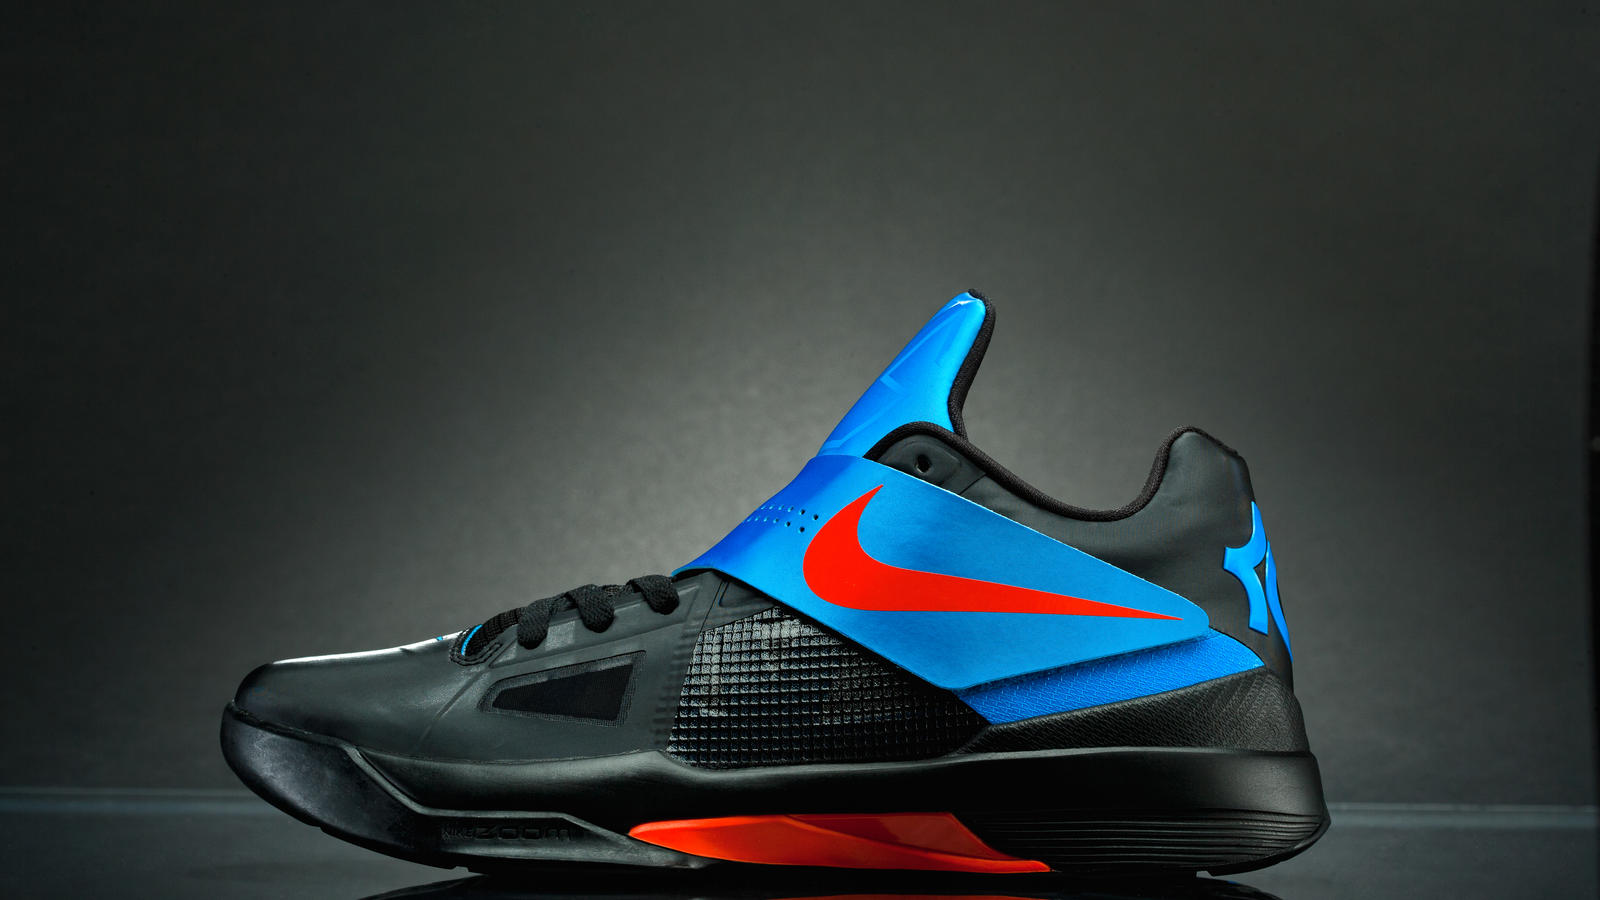 new concept f1558 6298d Launching December 3, the Nike Zoom KD IV features the new Adaptive Fit  system, Hyperfuse construction and a Zoom Air unit – a versatile  combination for one ...